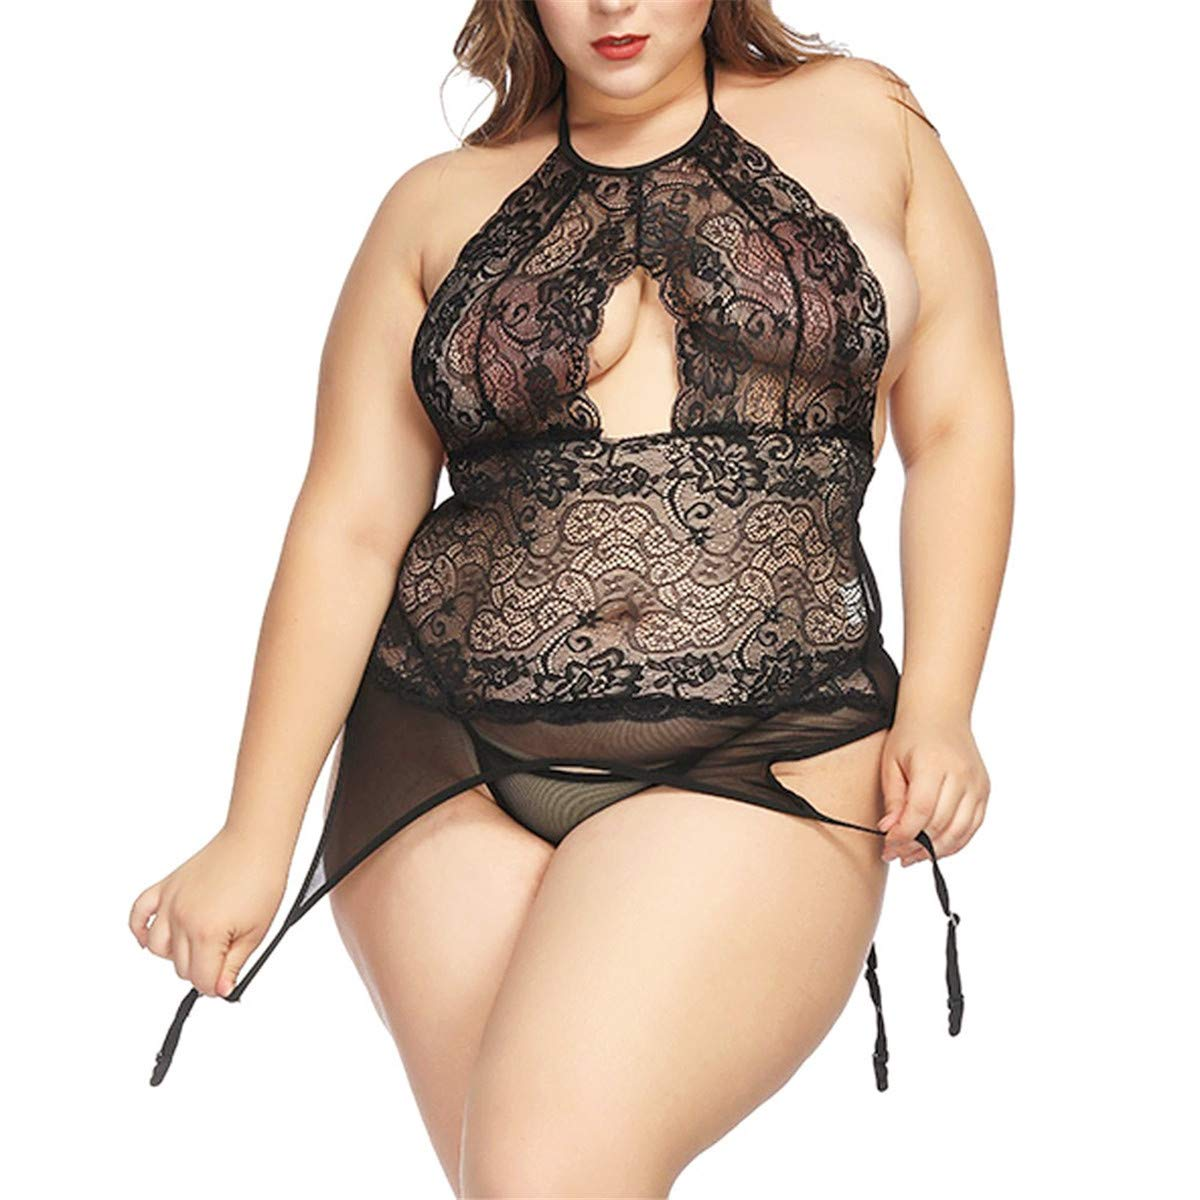 1bc8741312775 Women Red Lace Lingerie See Through Plus Size, Wesracia Halter Black  Lingerie Garter Set With Sheer T Back Thong at Amazon Women's Clothing  store: